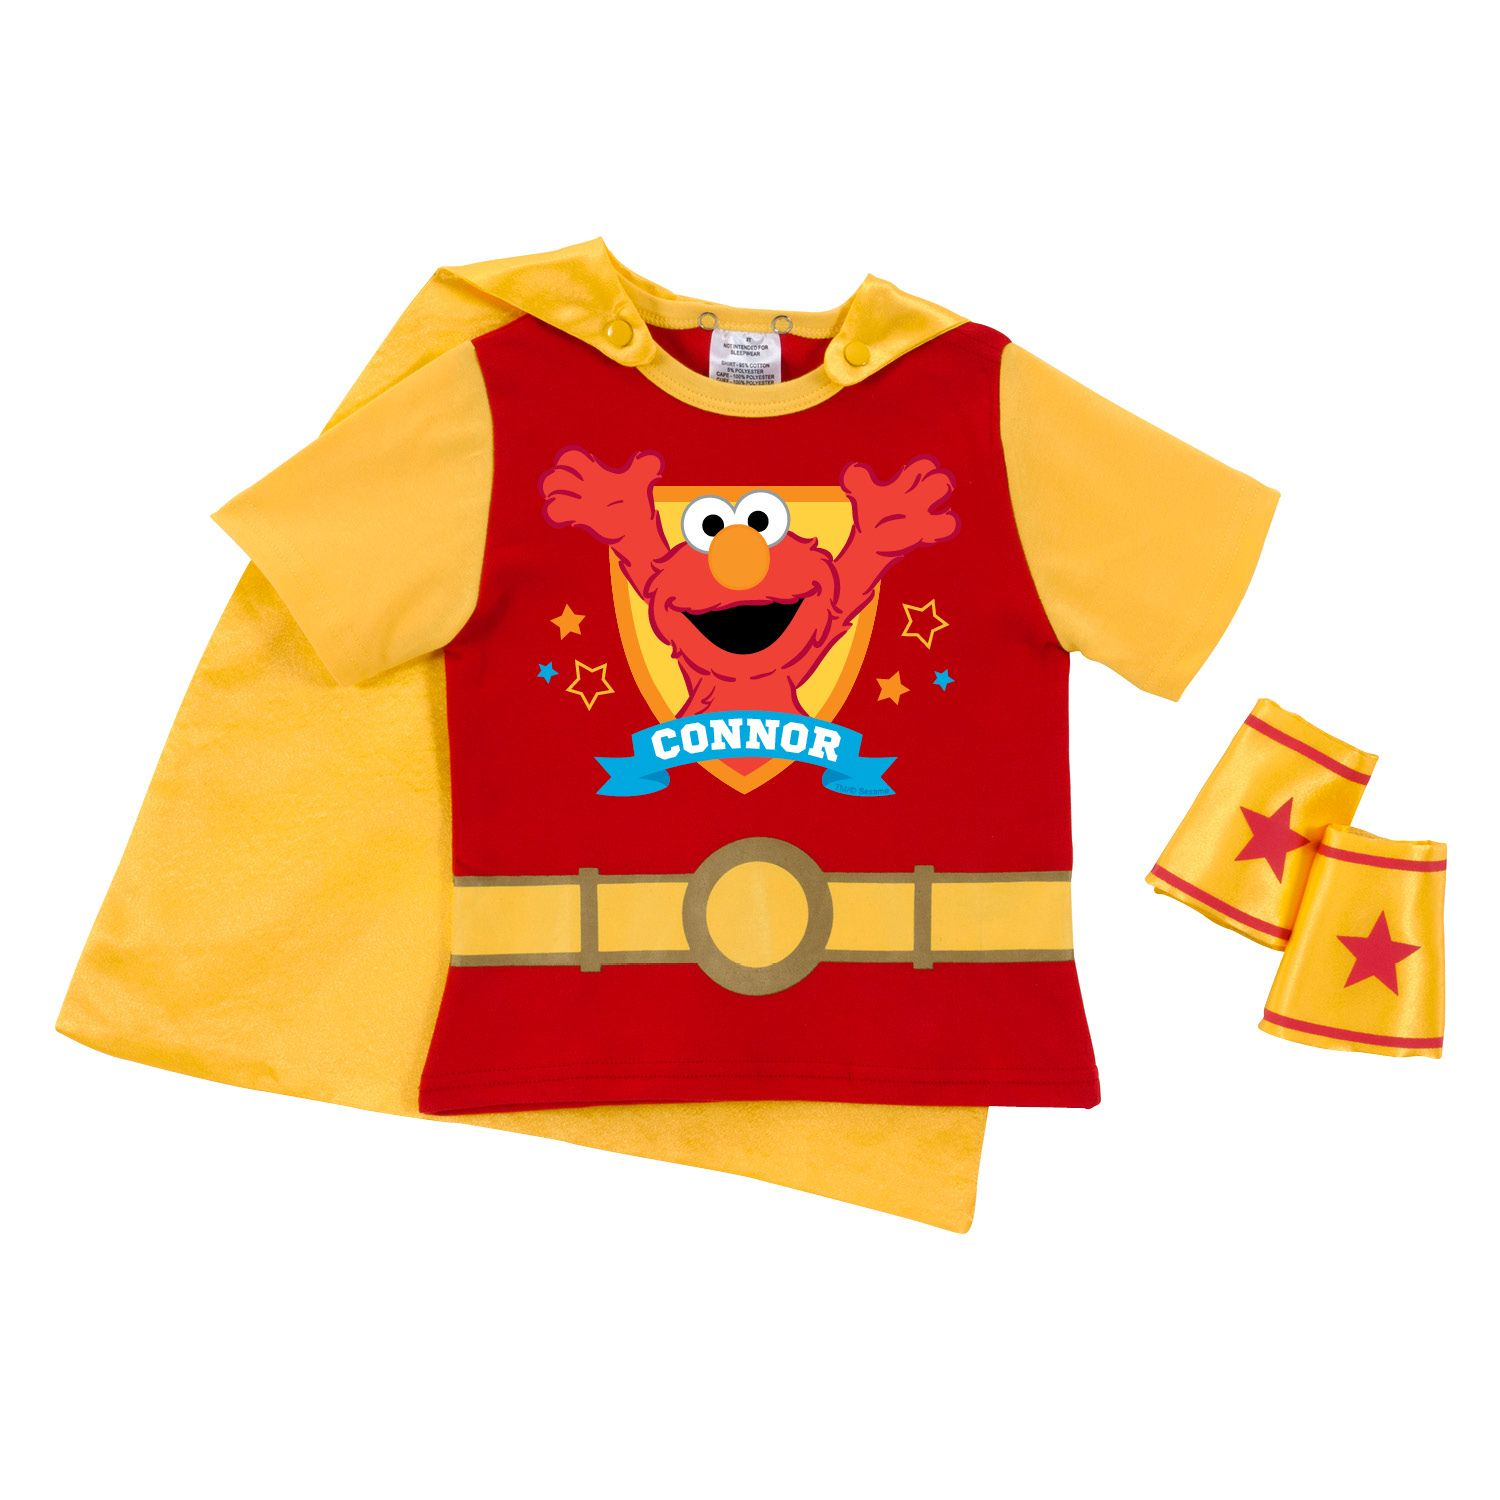 a51cee4b75c The Official PBS KIDS Shop